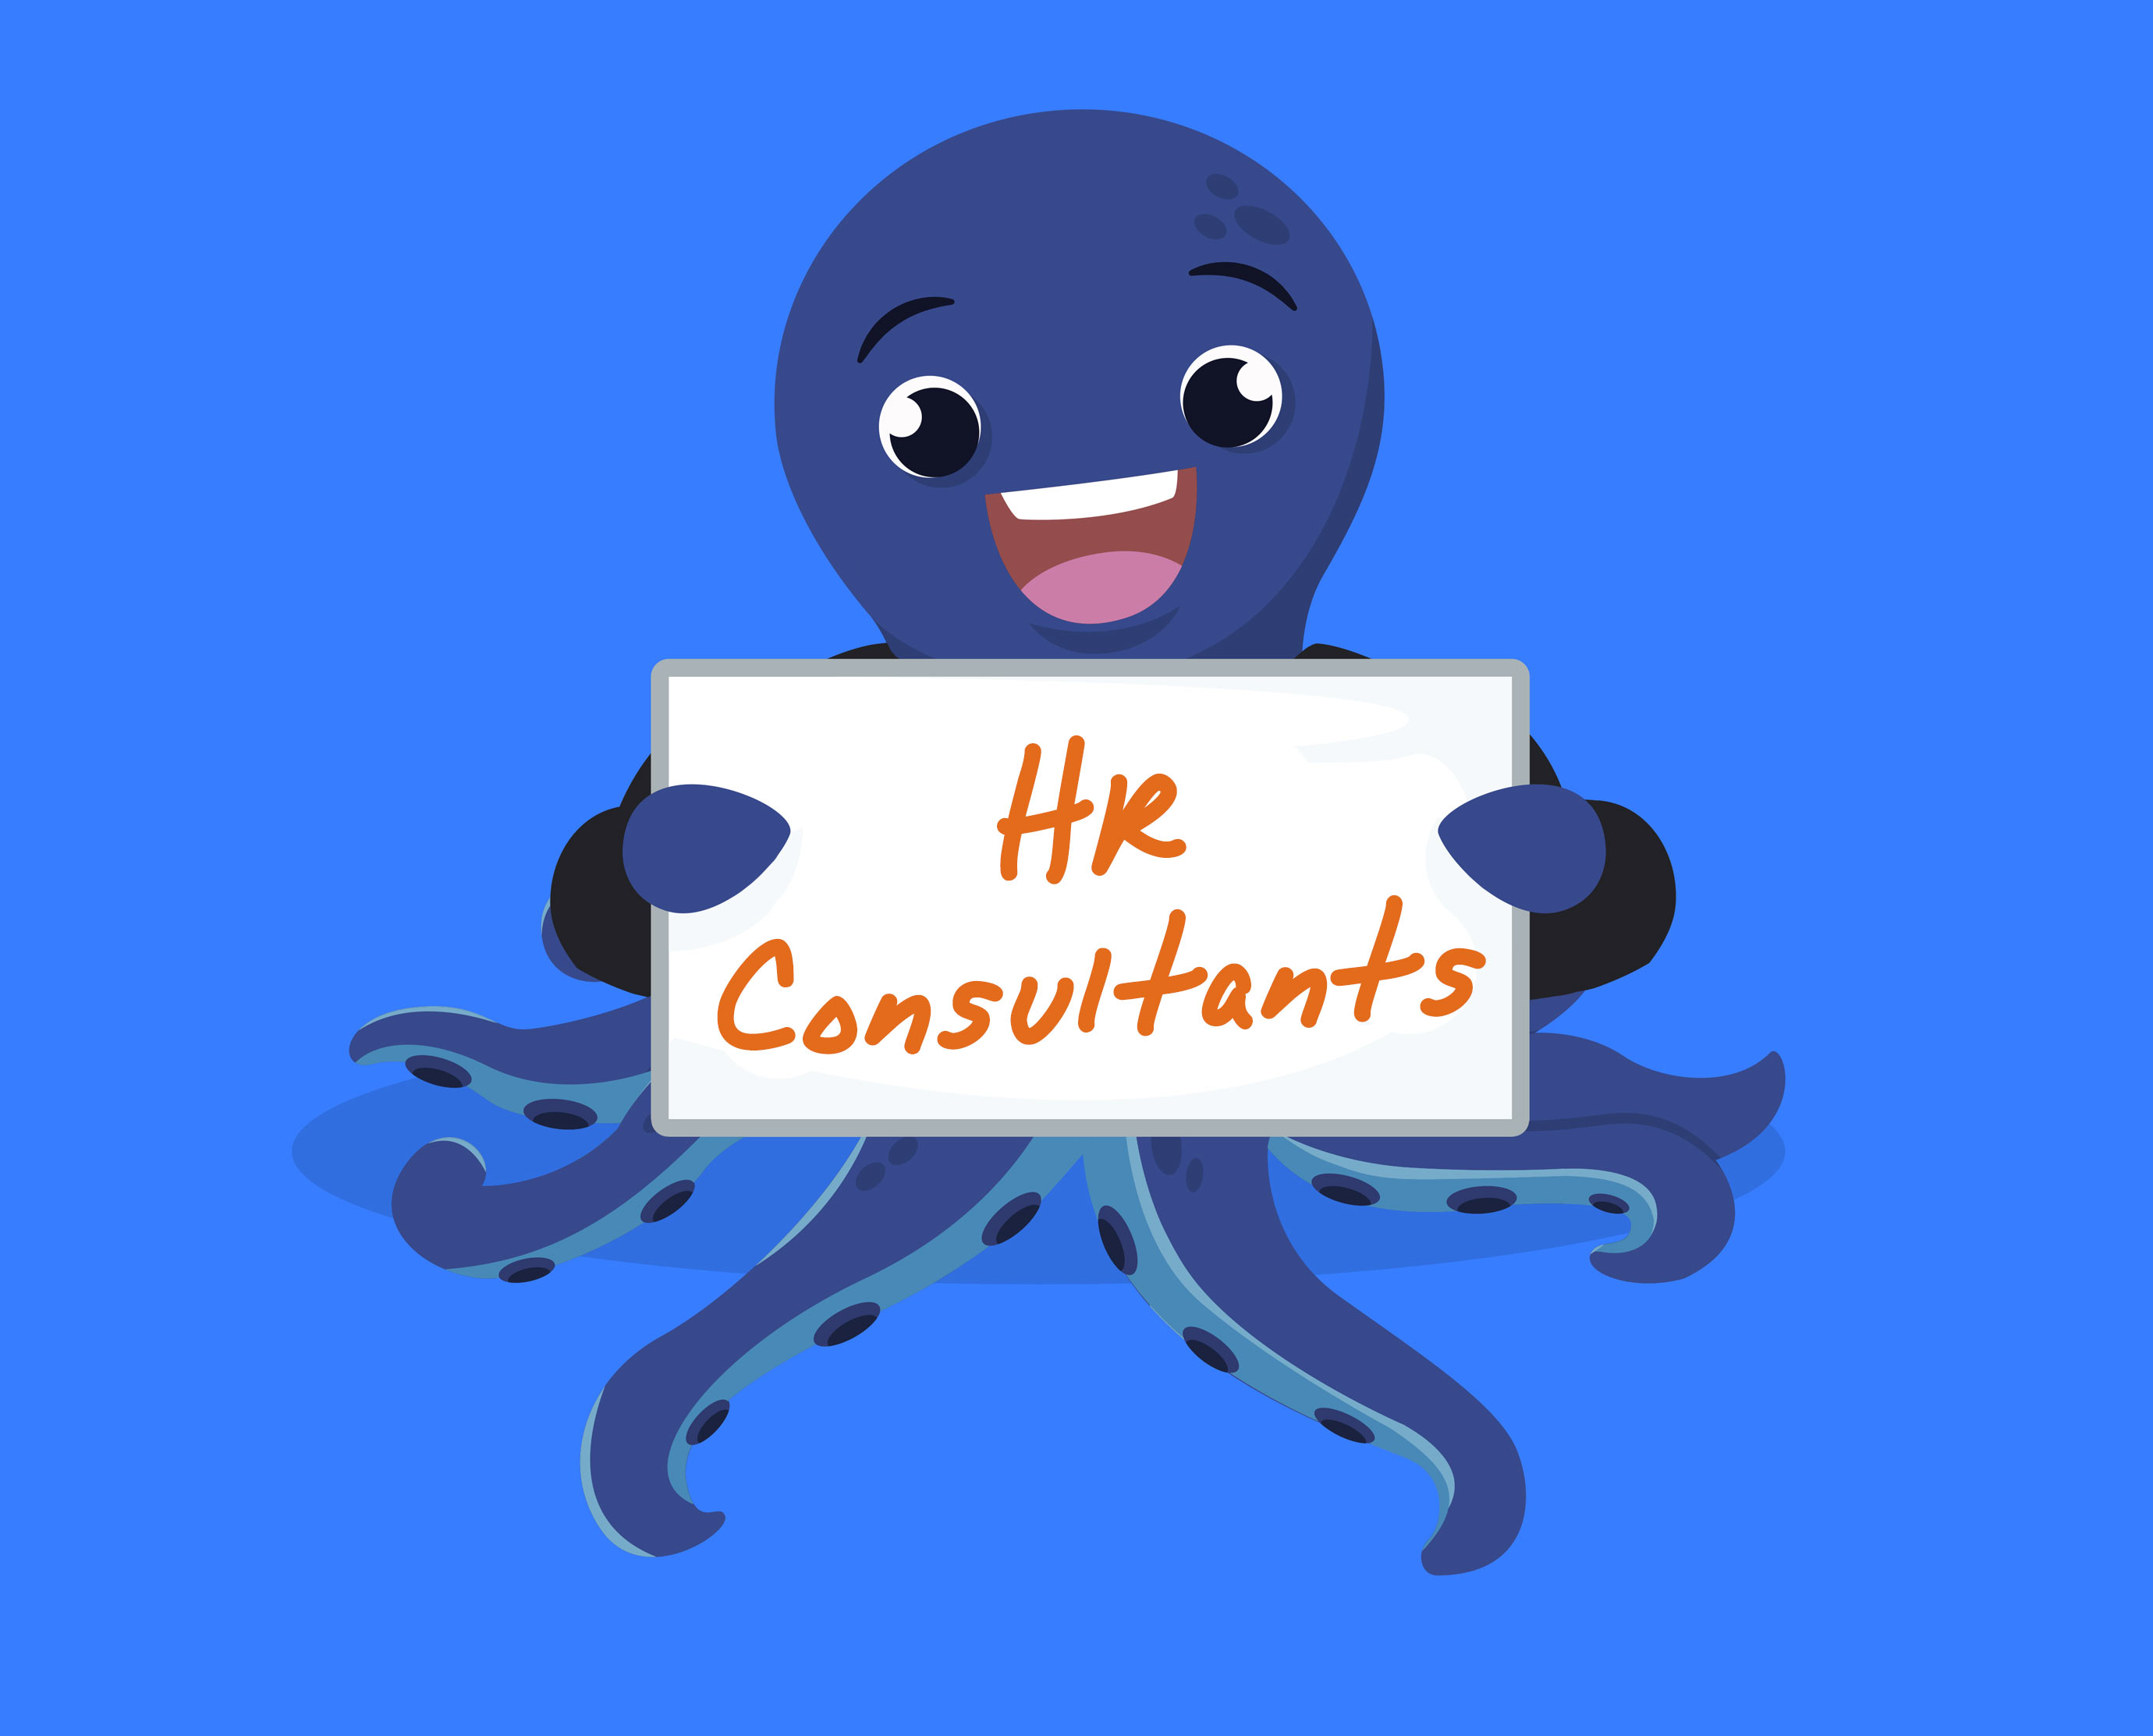 HR Consultants - Compare Providers, Pricing and Reviews